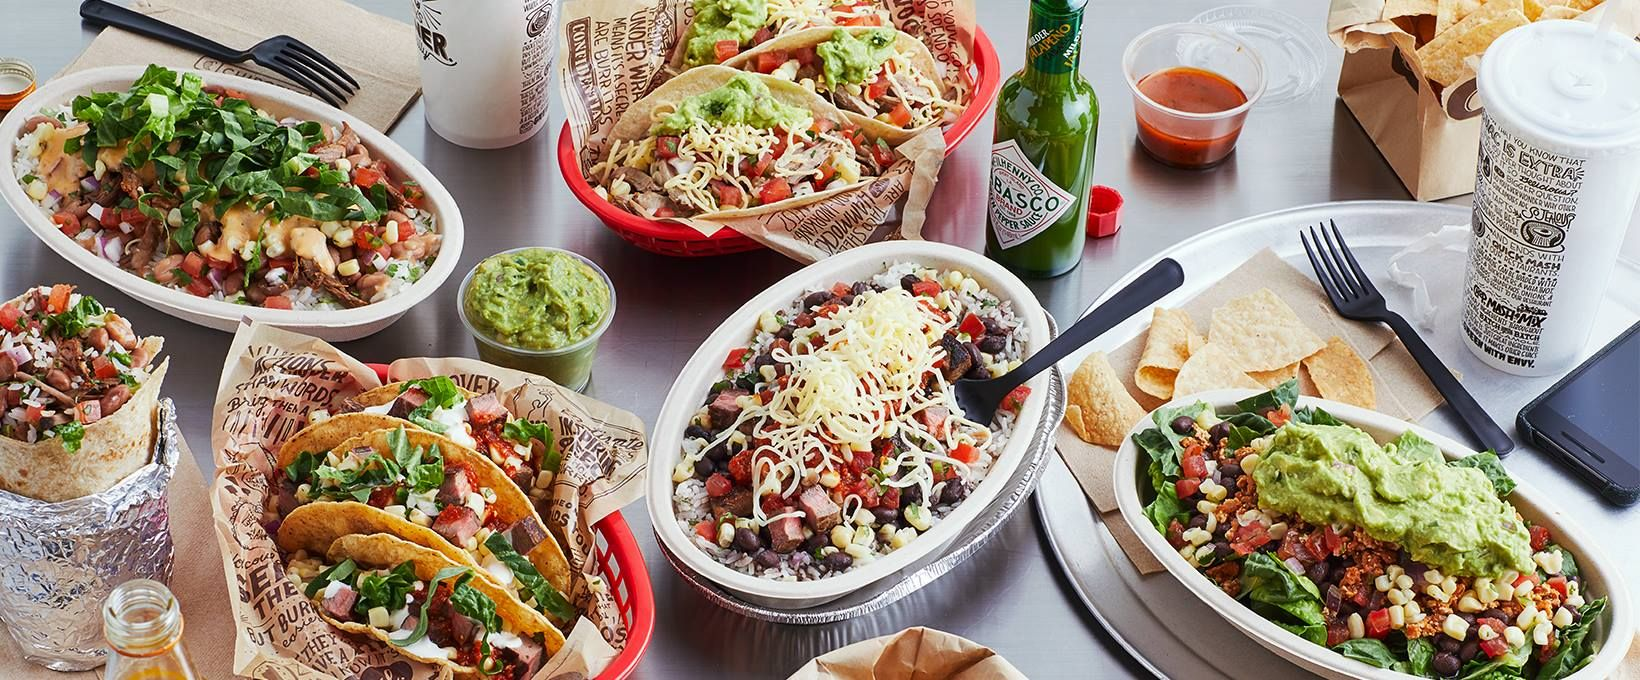 DoorDash Is Giving Away A Week Of Free Food For New And